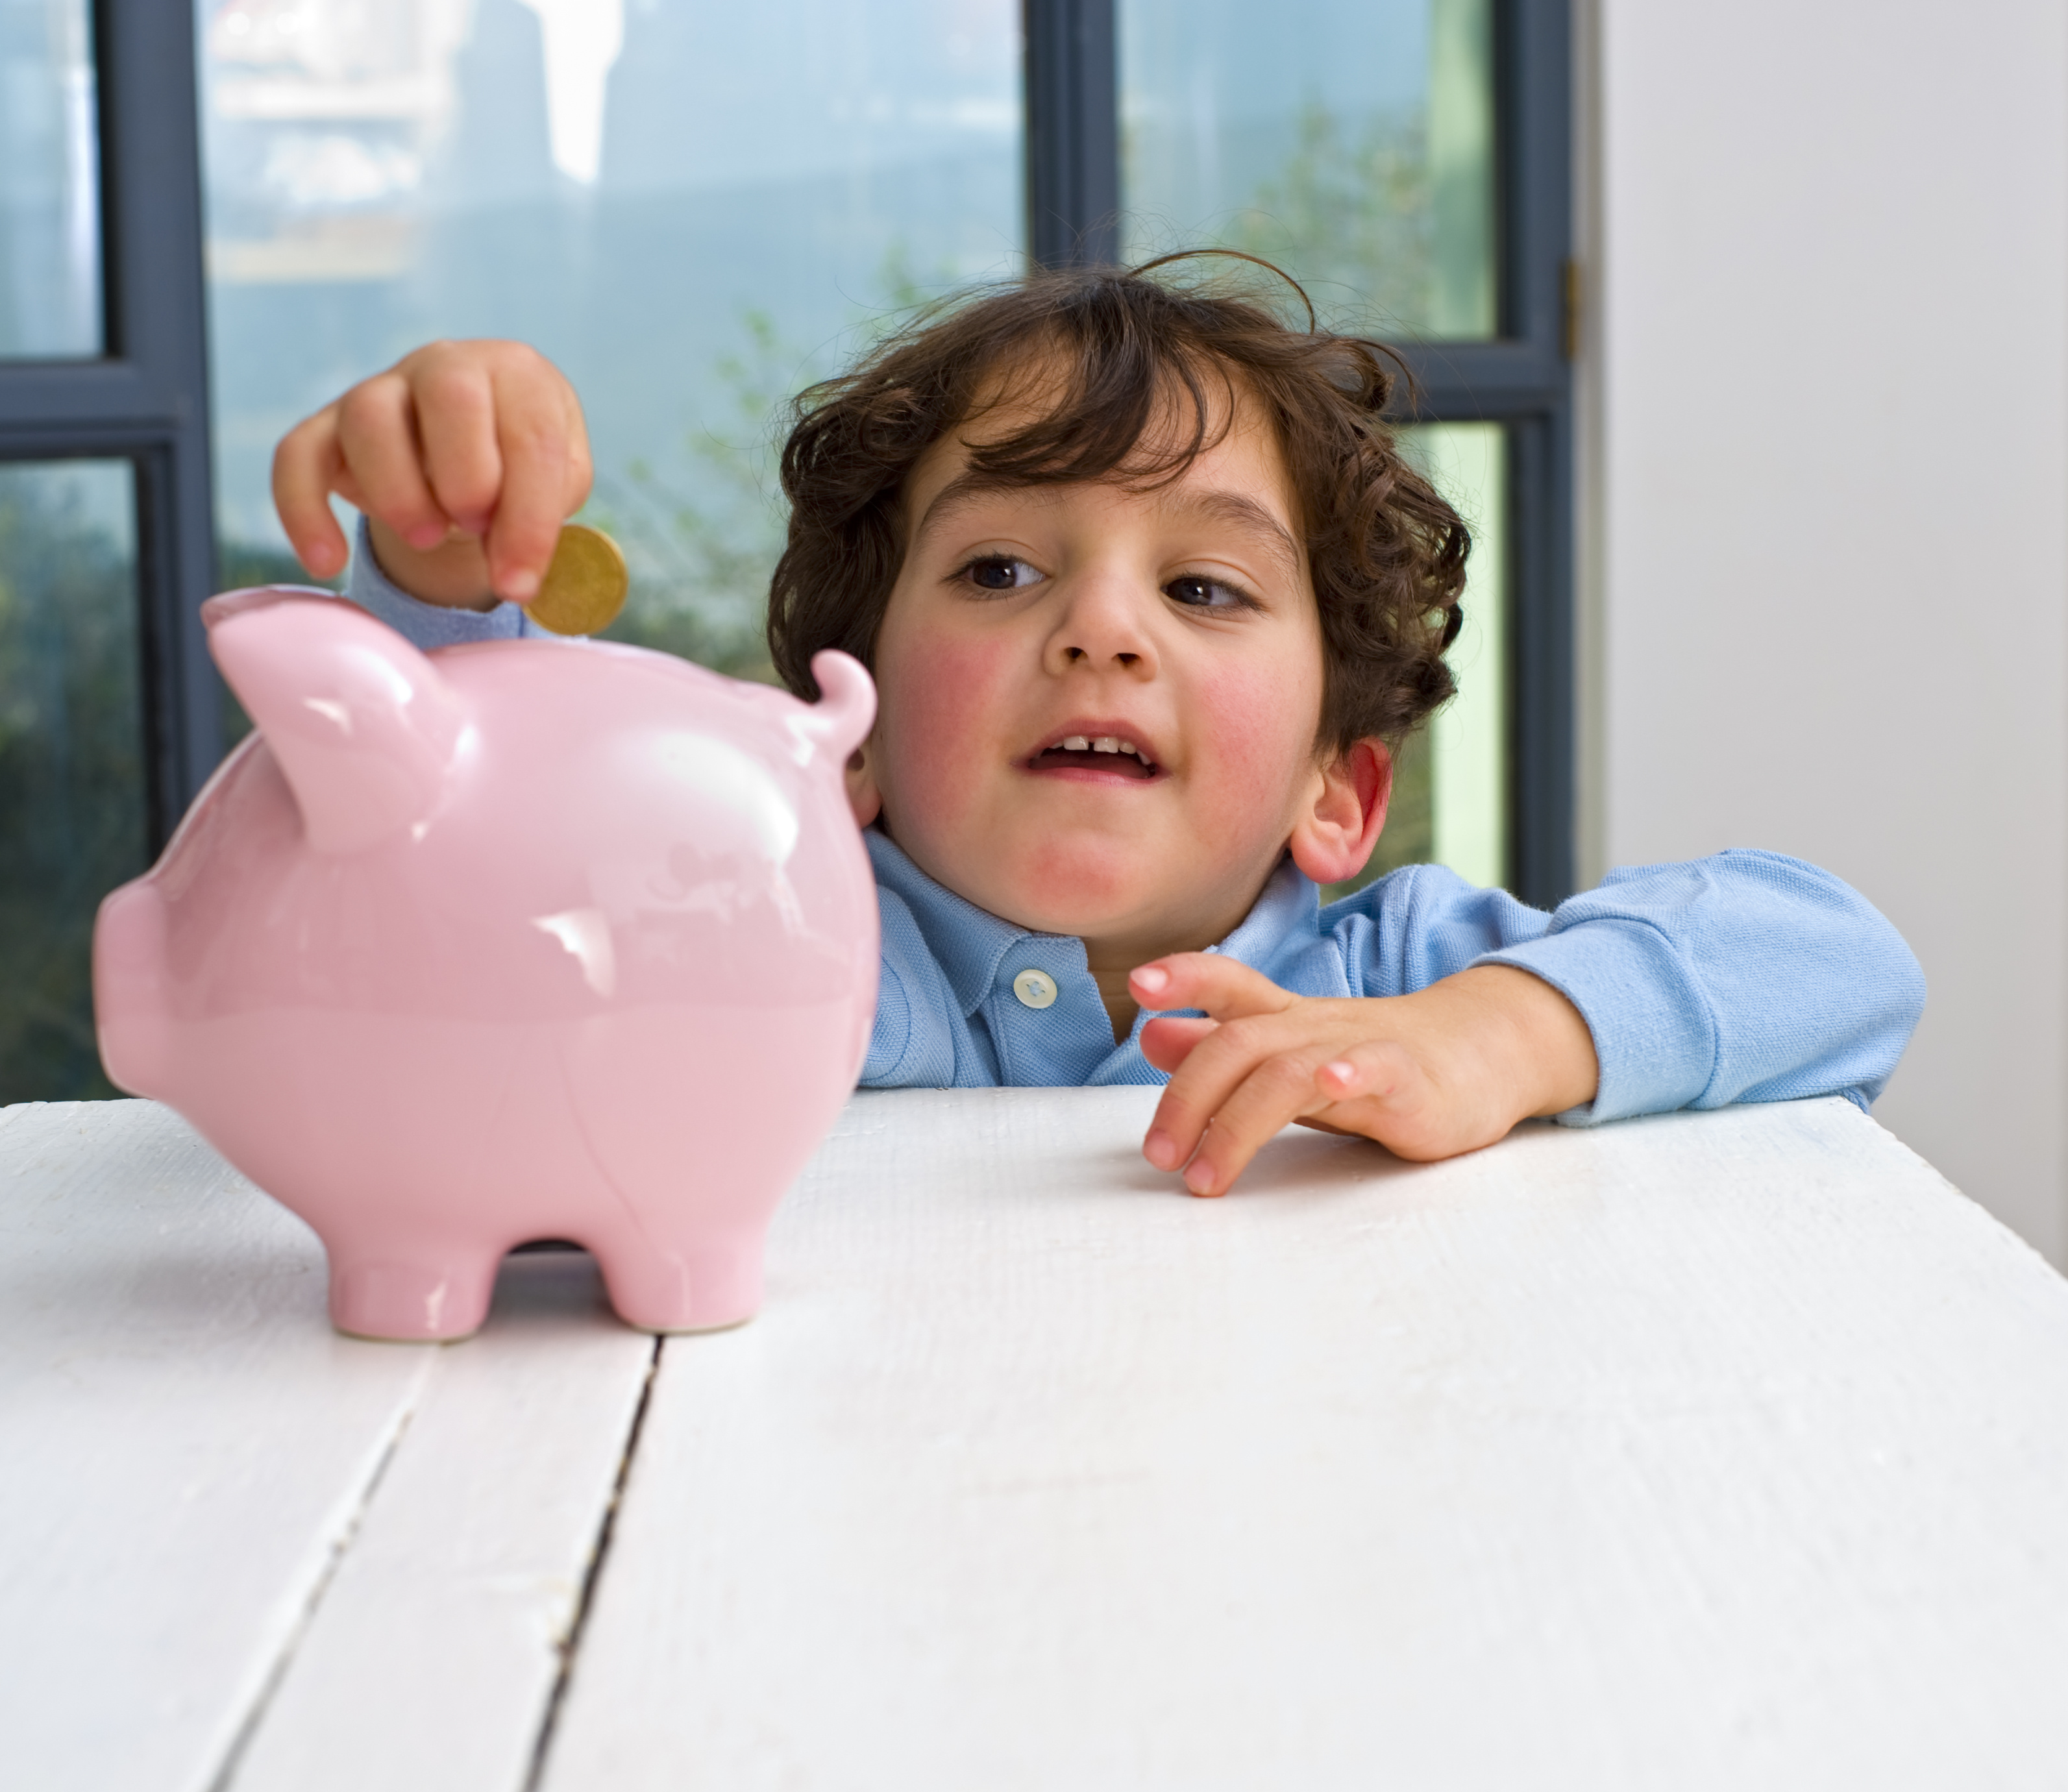 Piggy Bank. The concept of saving money is one which everyone will be familiar with. Almost everybody will understand that to buy things which you want, you need money. To have enough money, you will need to save a little. Therefore the earlier your child understands this idea of saving, the better their understanding will develop.